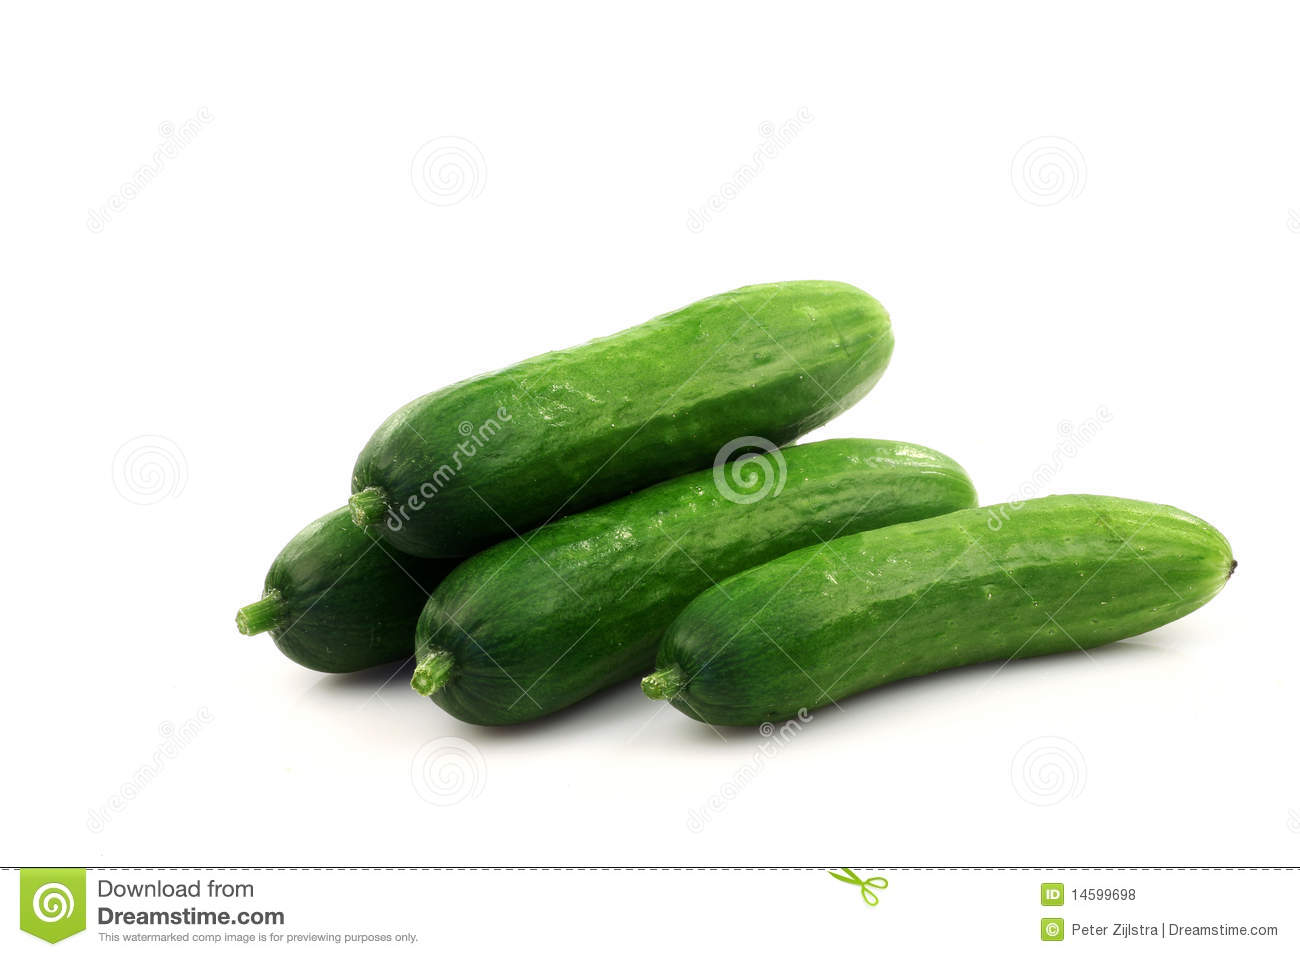 how to eat white cucumber